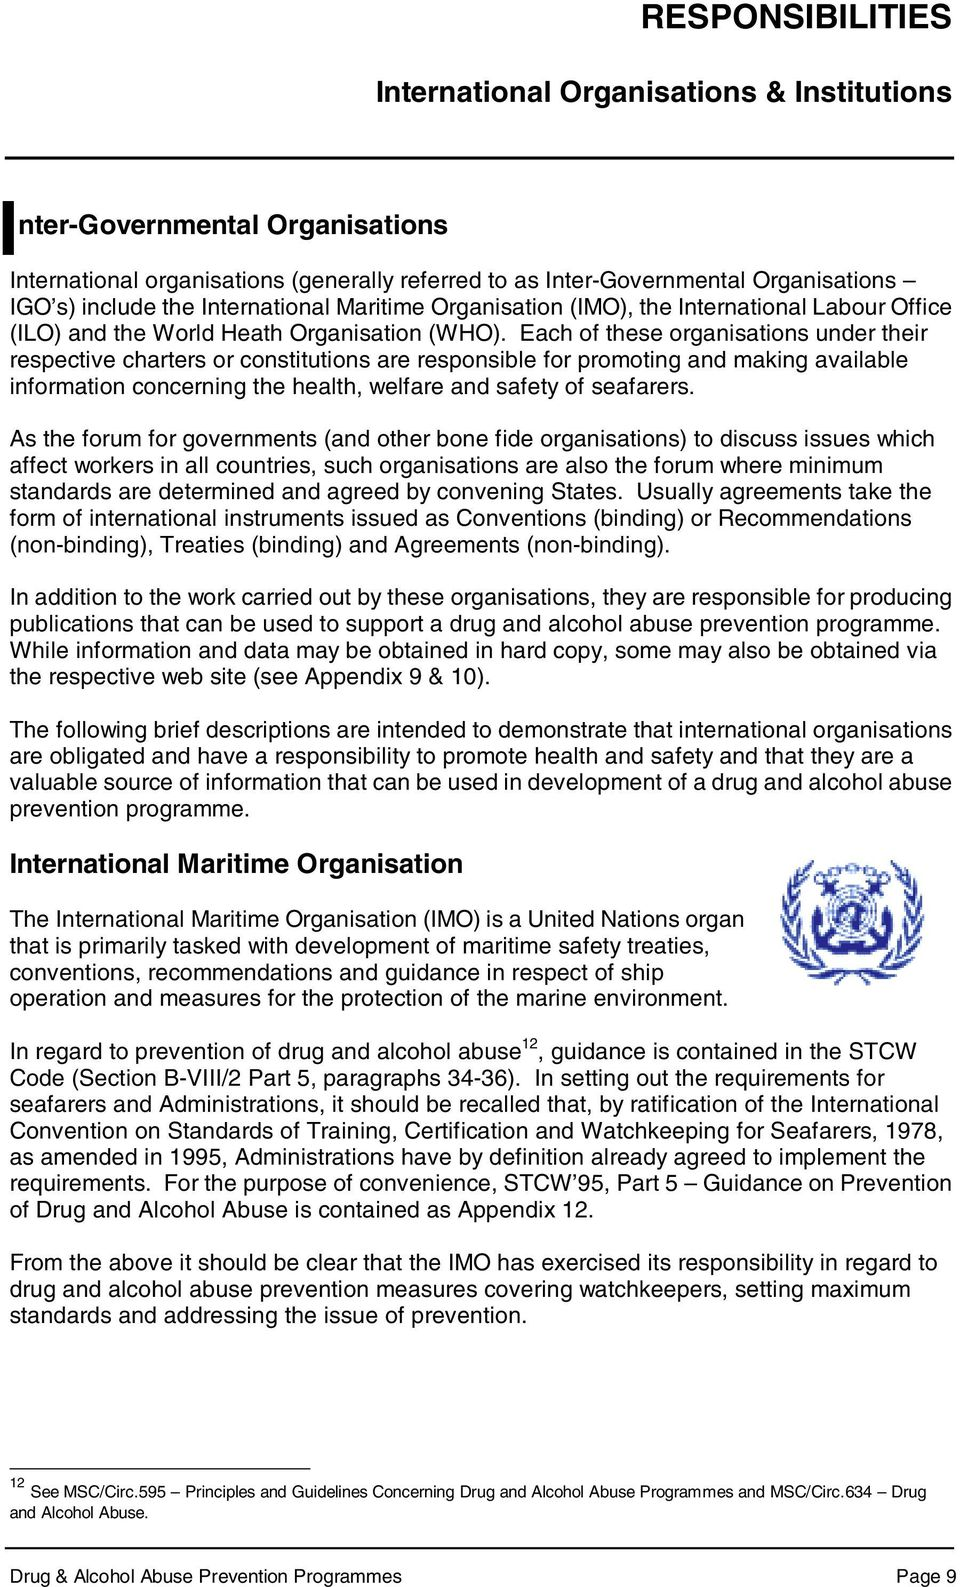 Each of these organisations under their respective charters or constitutions are responsible for promoting and making available information concerning the health, welfare and safety of seafarers.